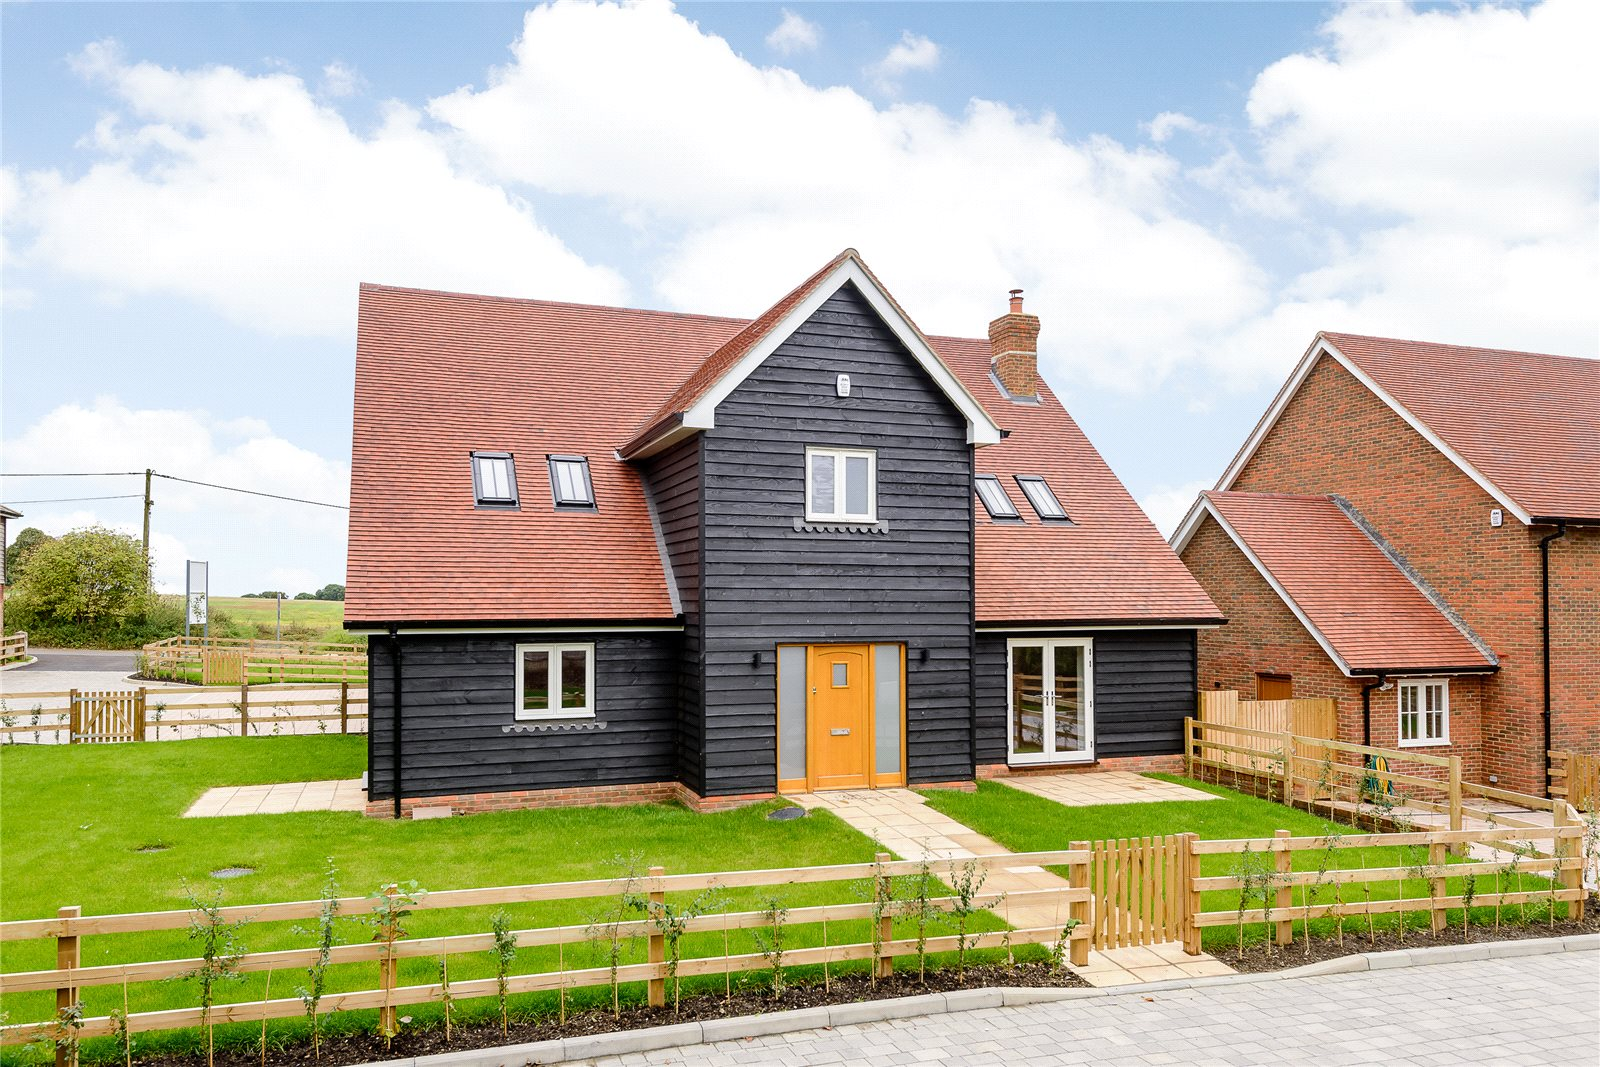 Single Family Home for Sale at Wood Hill Lane, Long Sutton, Hook, Hampshire, RG29 Hook, England